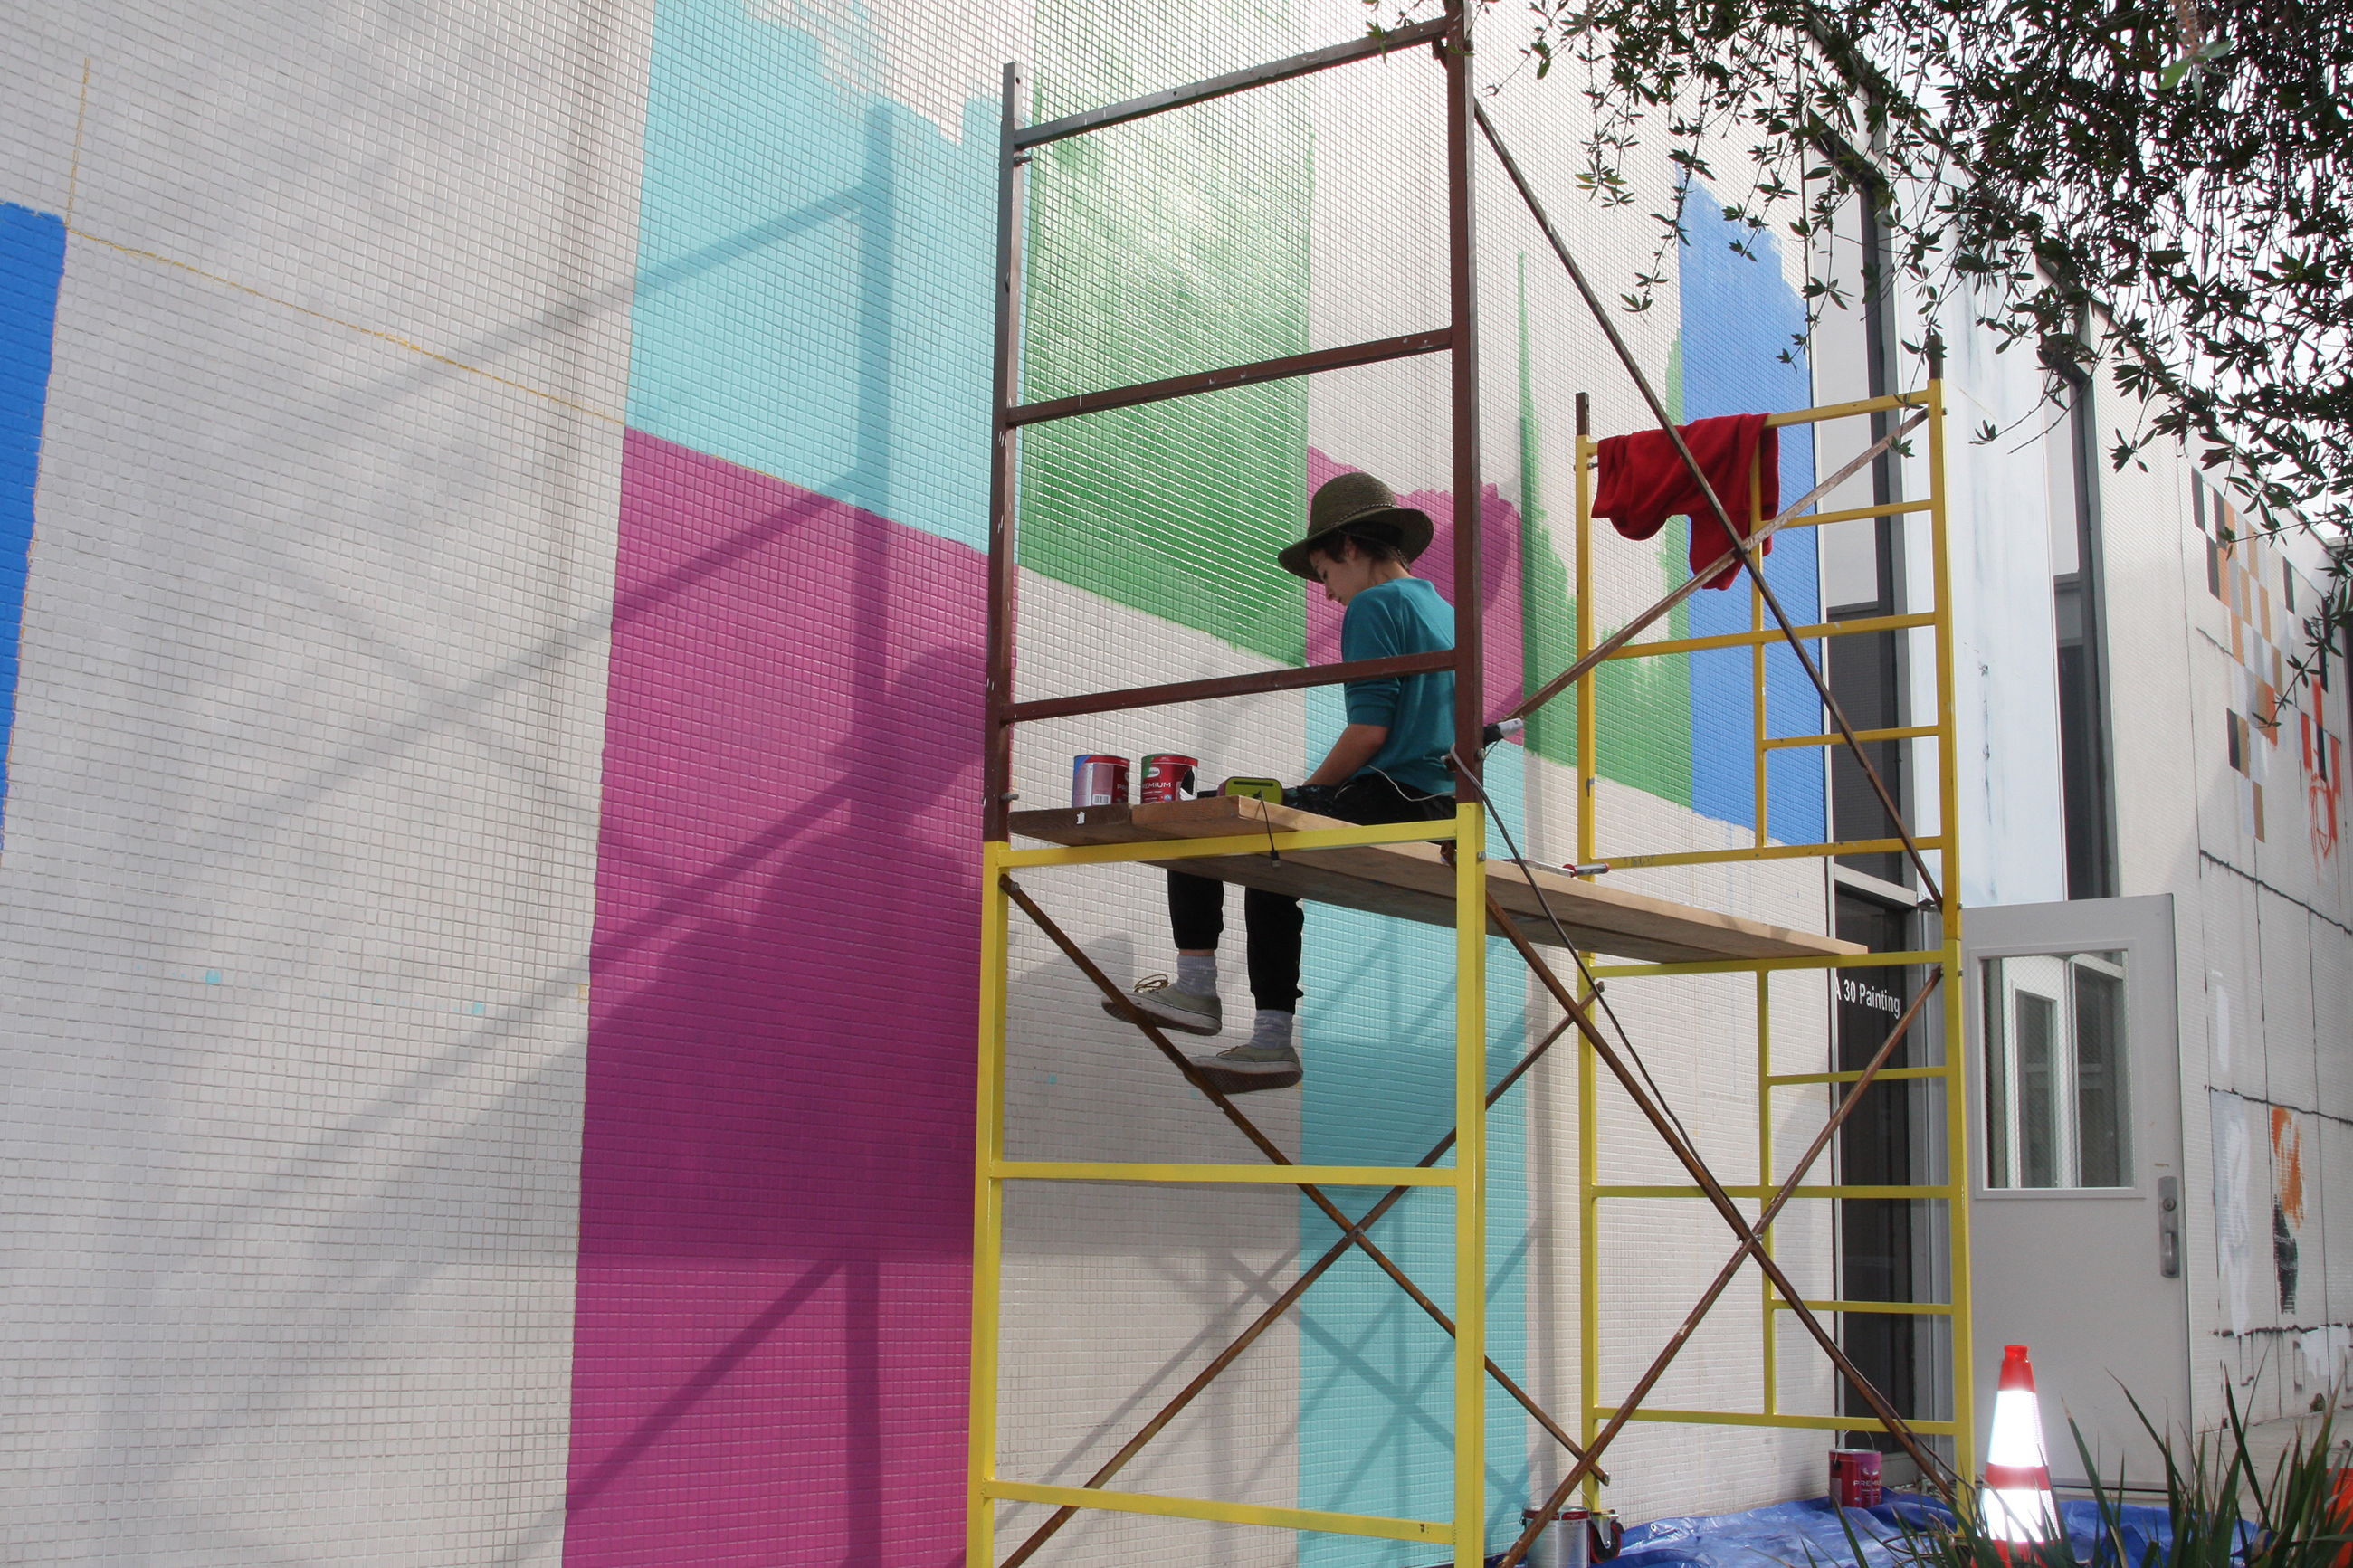 Yomina Del Castillo painting the old Fine Ats building. The community will be able to paint over the colorful paint at the FAR-Bazaar event. Photo credit: David Jenkins